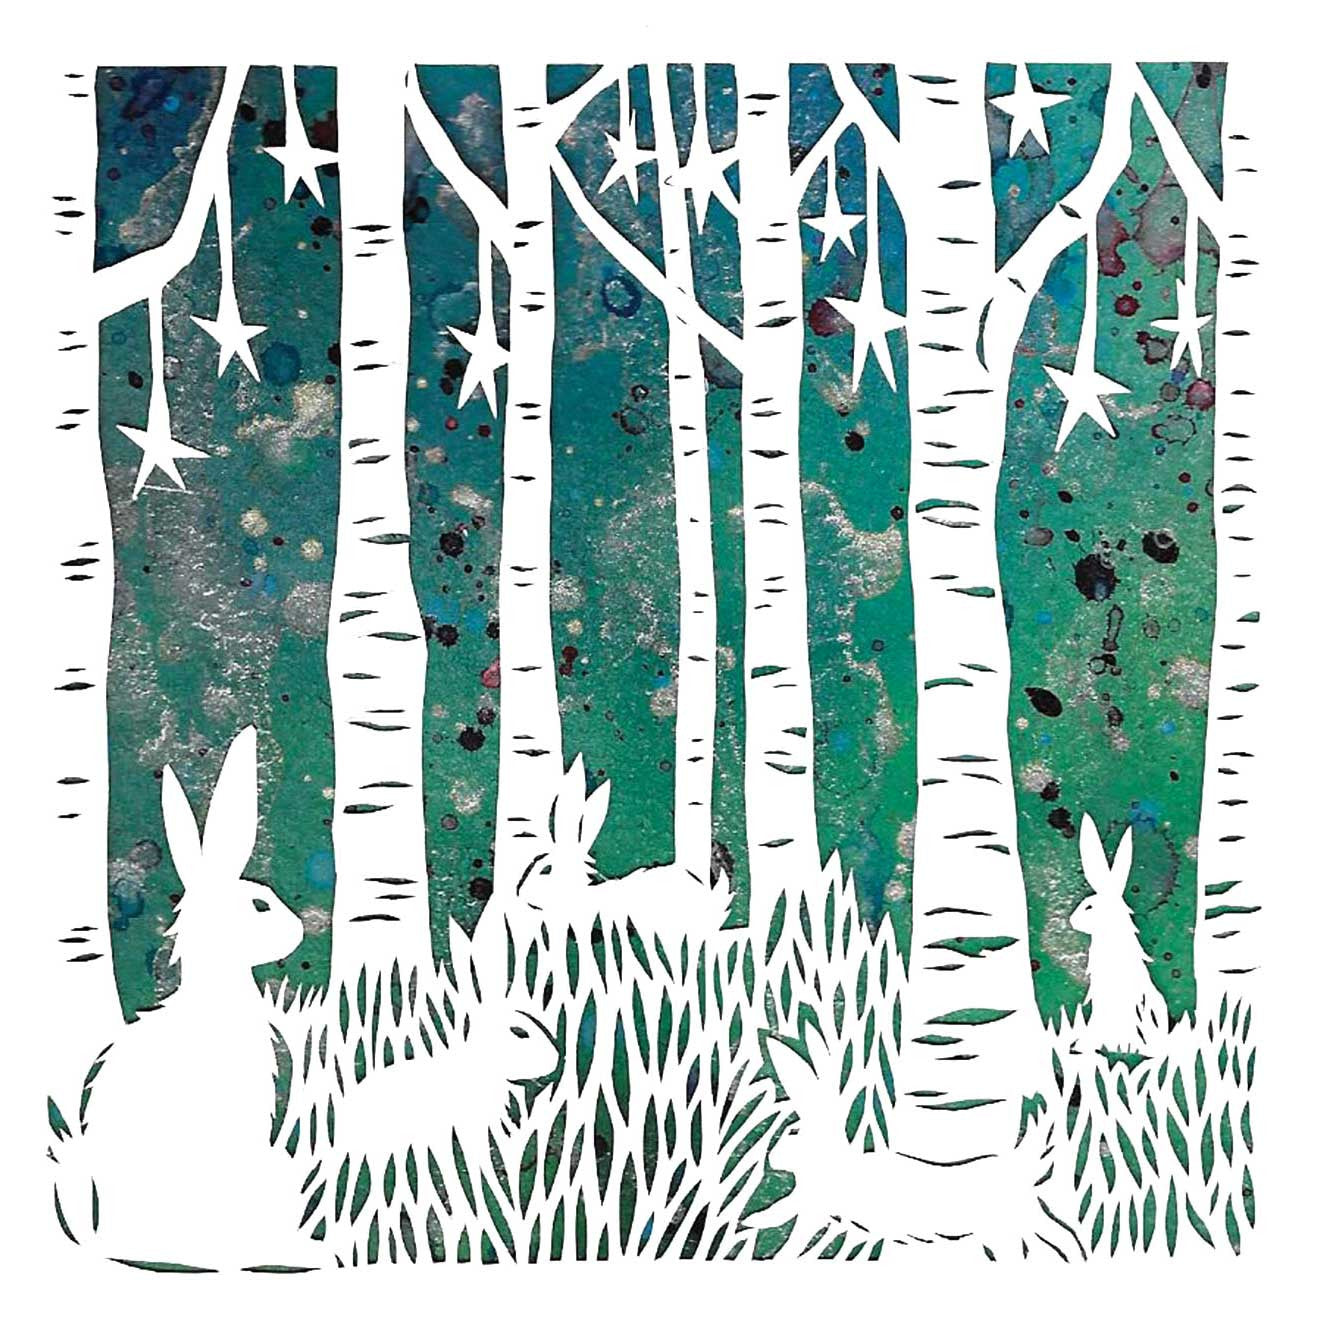 Night Foraging by Suzanne Breakwell, Art Greeting Card, Papercutting and Ink, Hares foraging among the trees at night